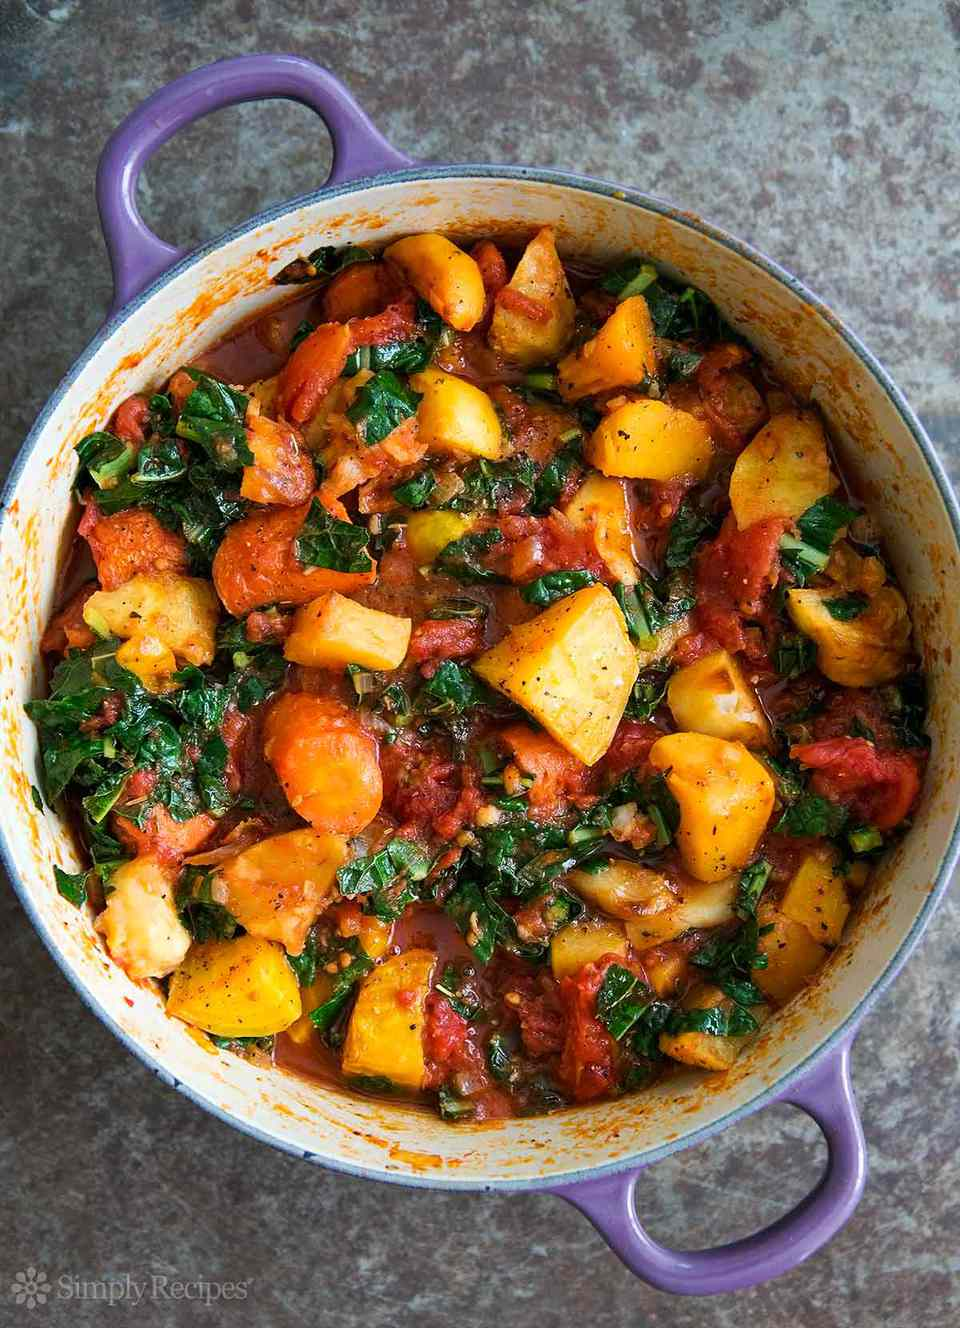 Roasted Root Vegetables with Tomato and Kale